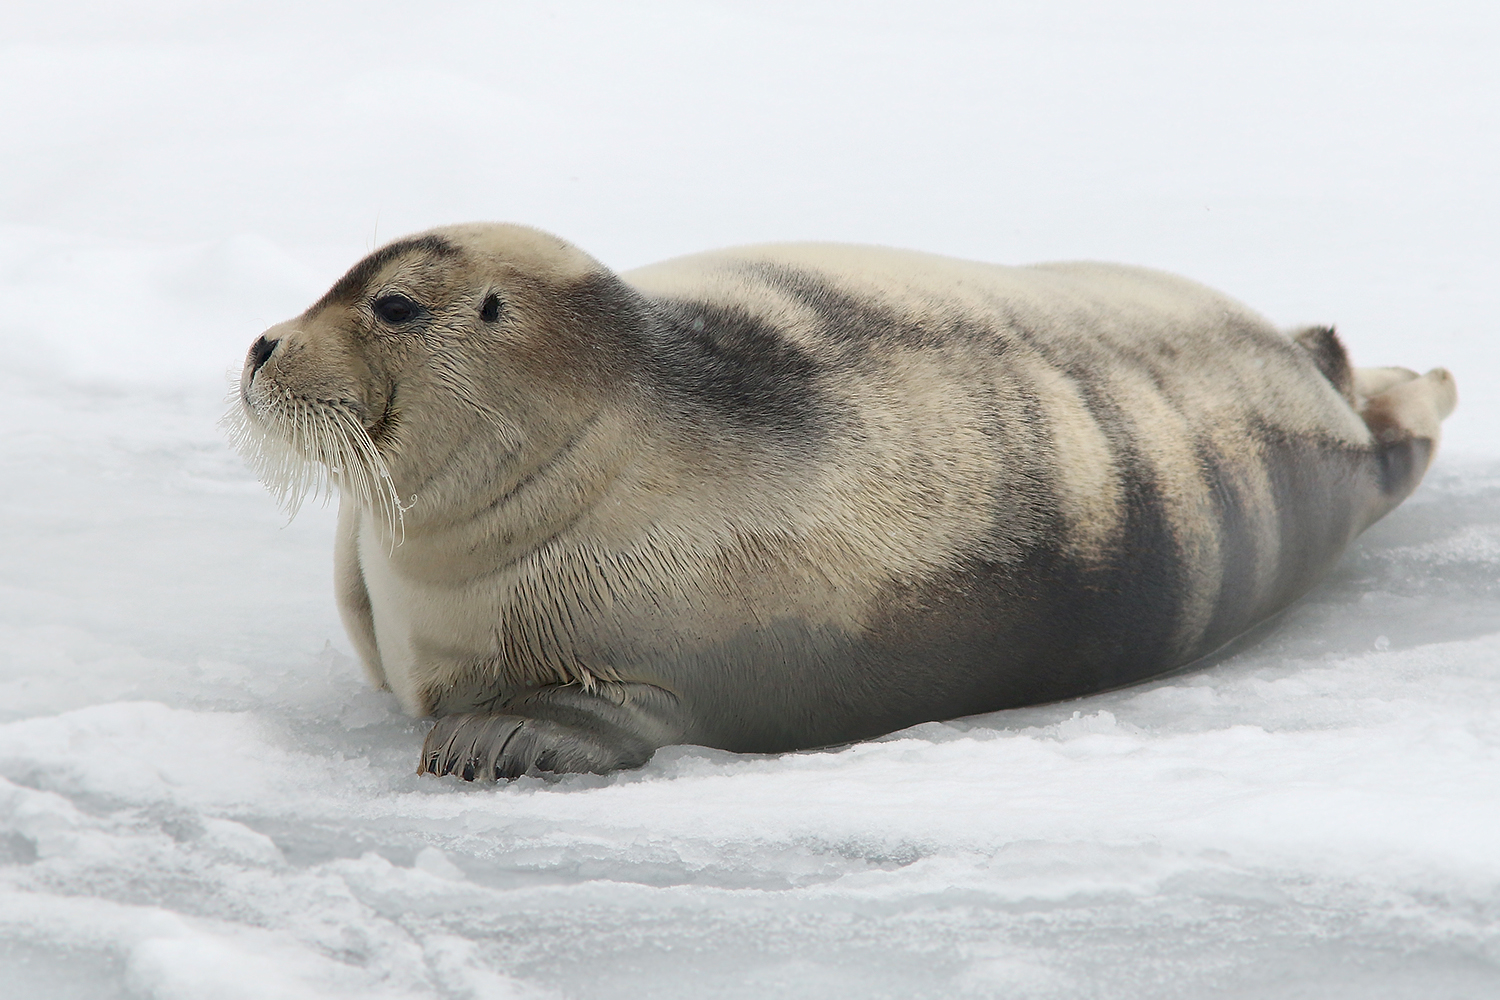 BeardedSeal_Mar92019_1661